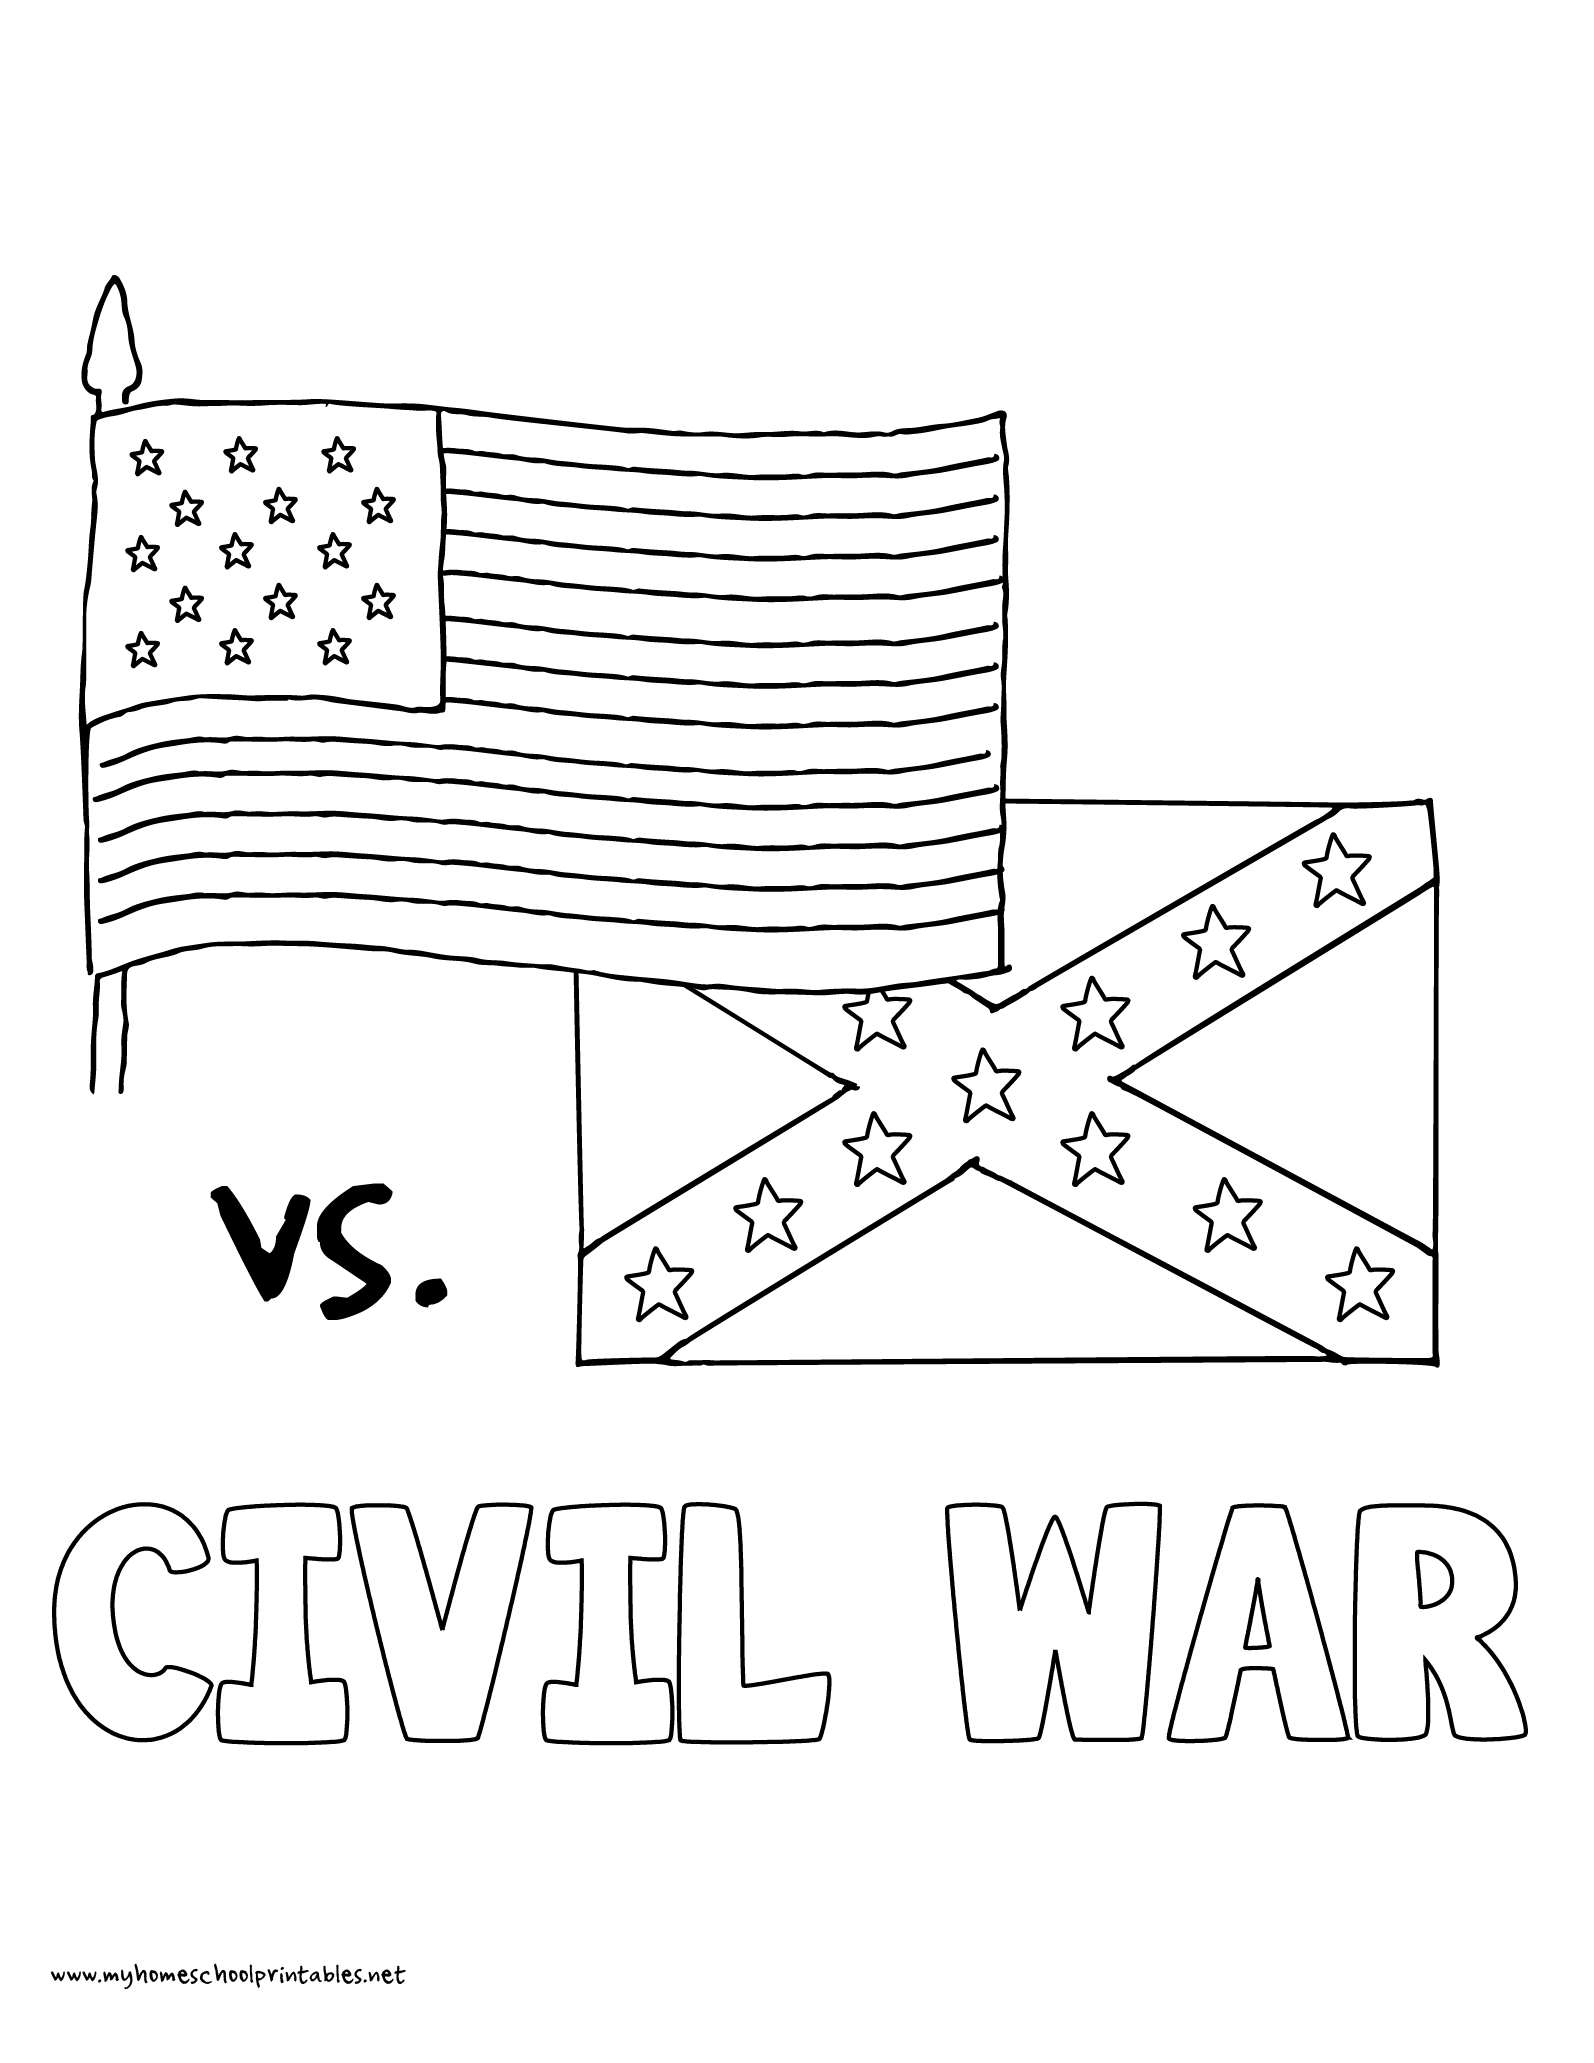 Civil War Map Coloring Sheet